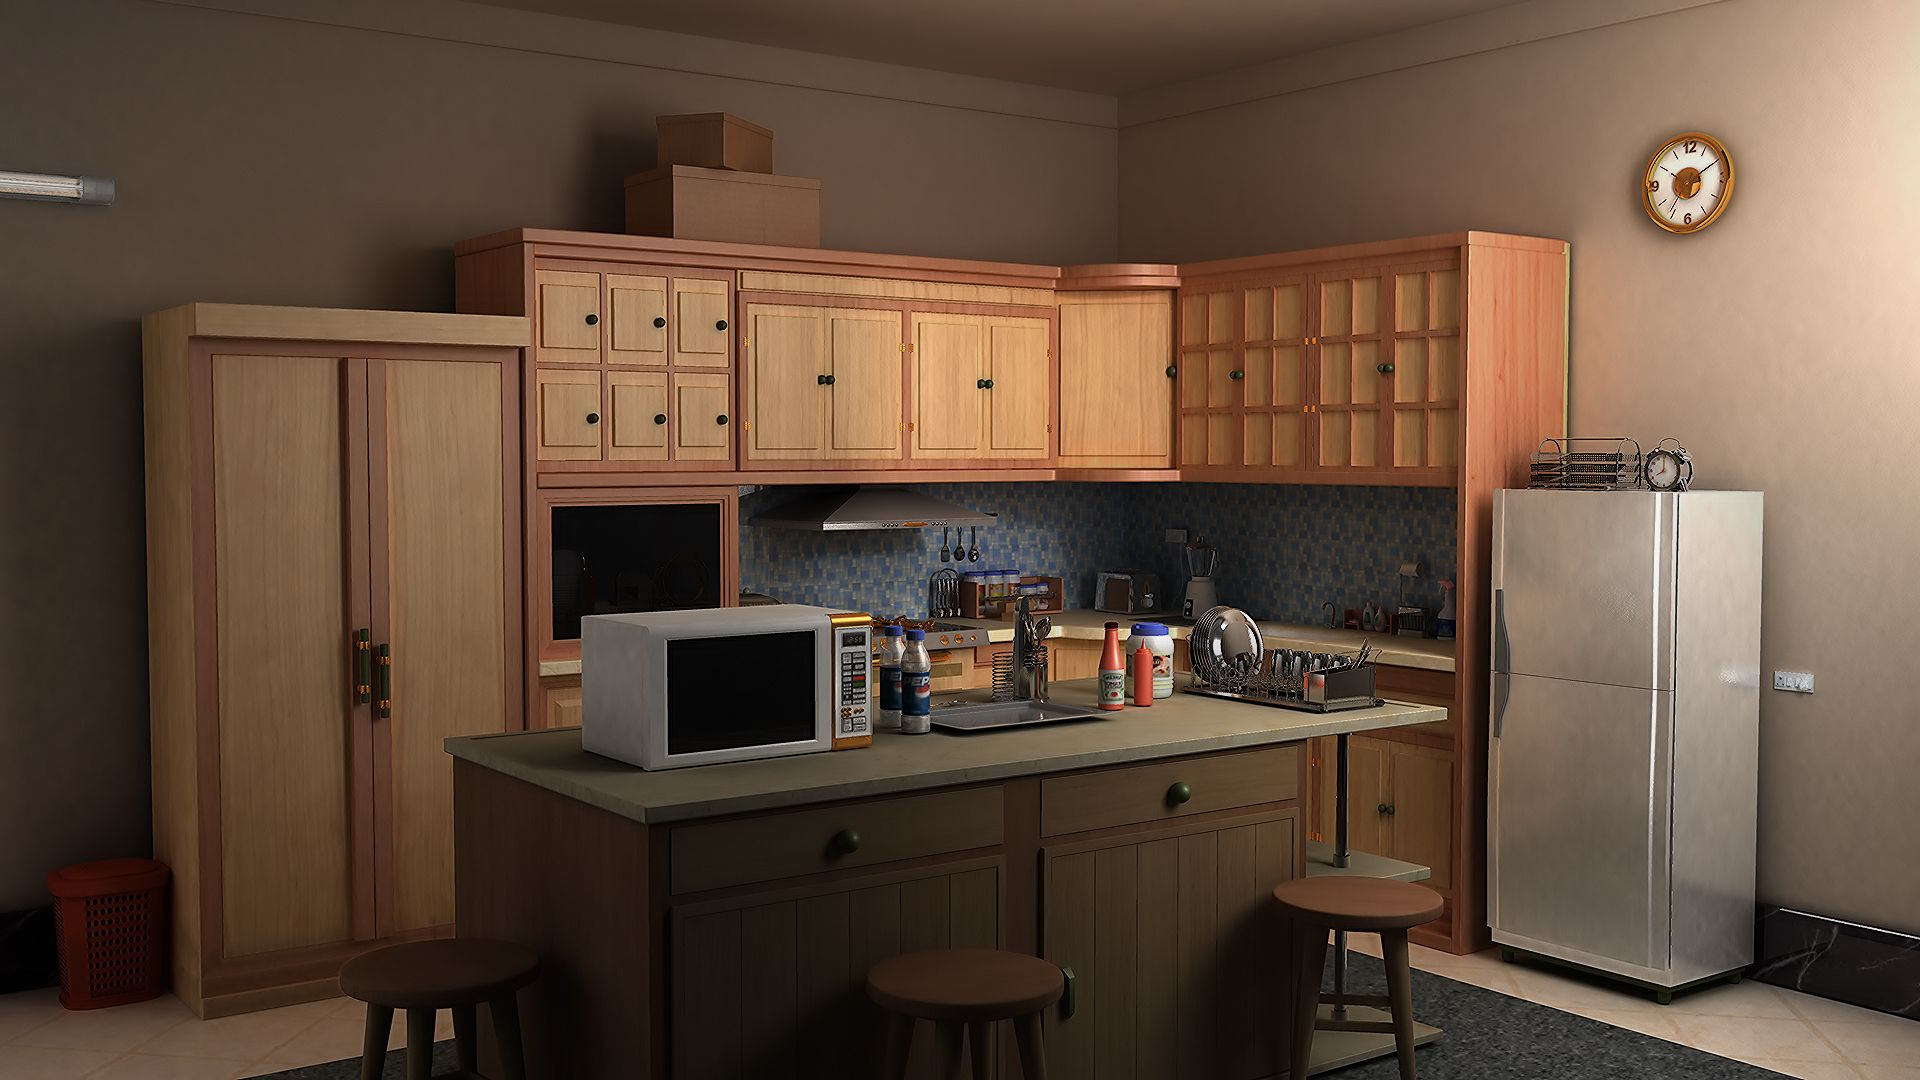 japanese traditional kitchen google search kitchen cabinet styles japanese kitchen kitchen on kitchen interior japan id=18049